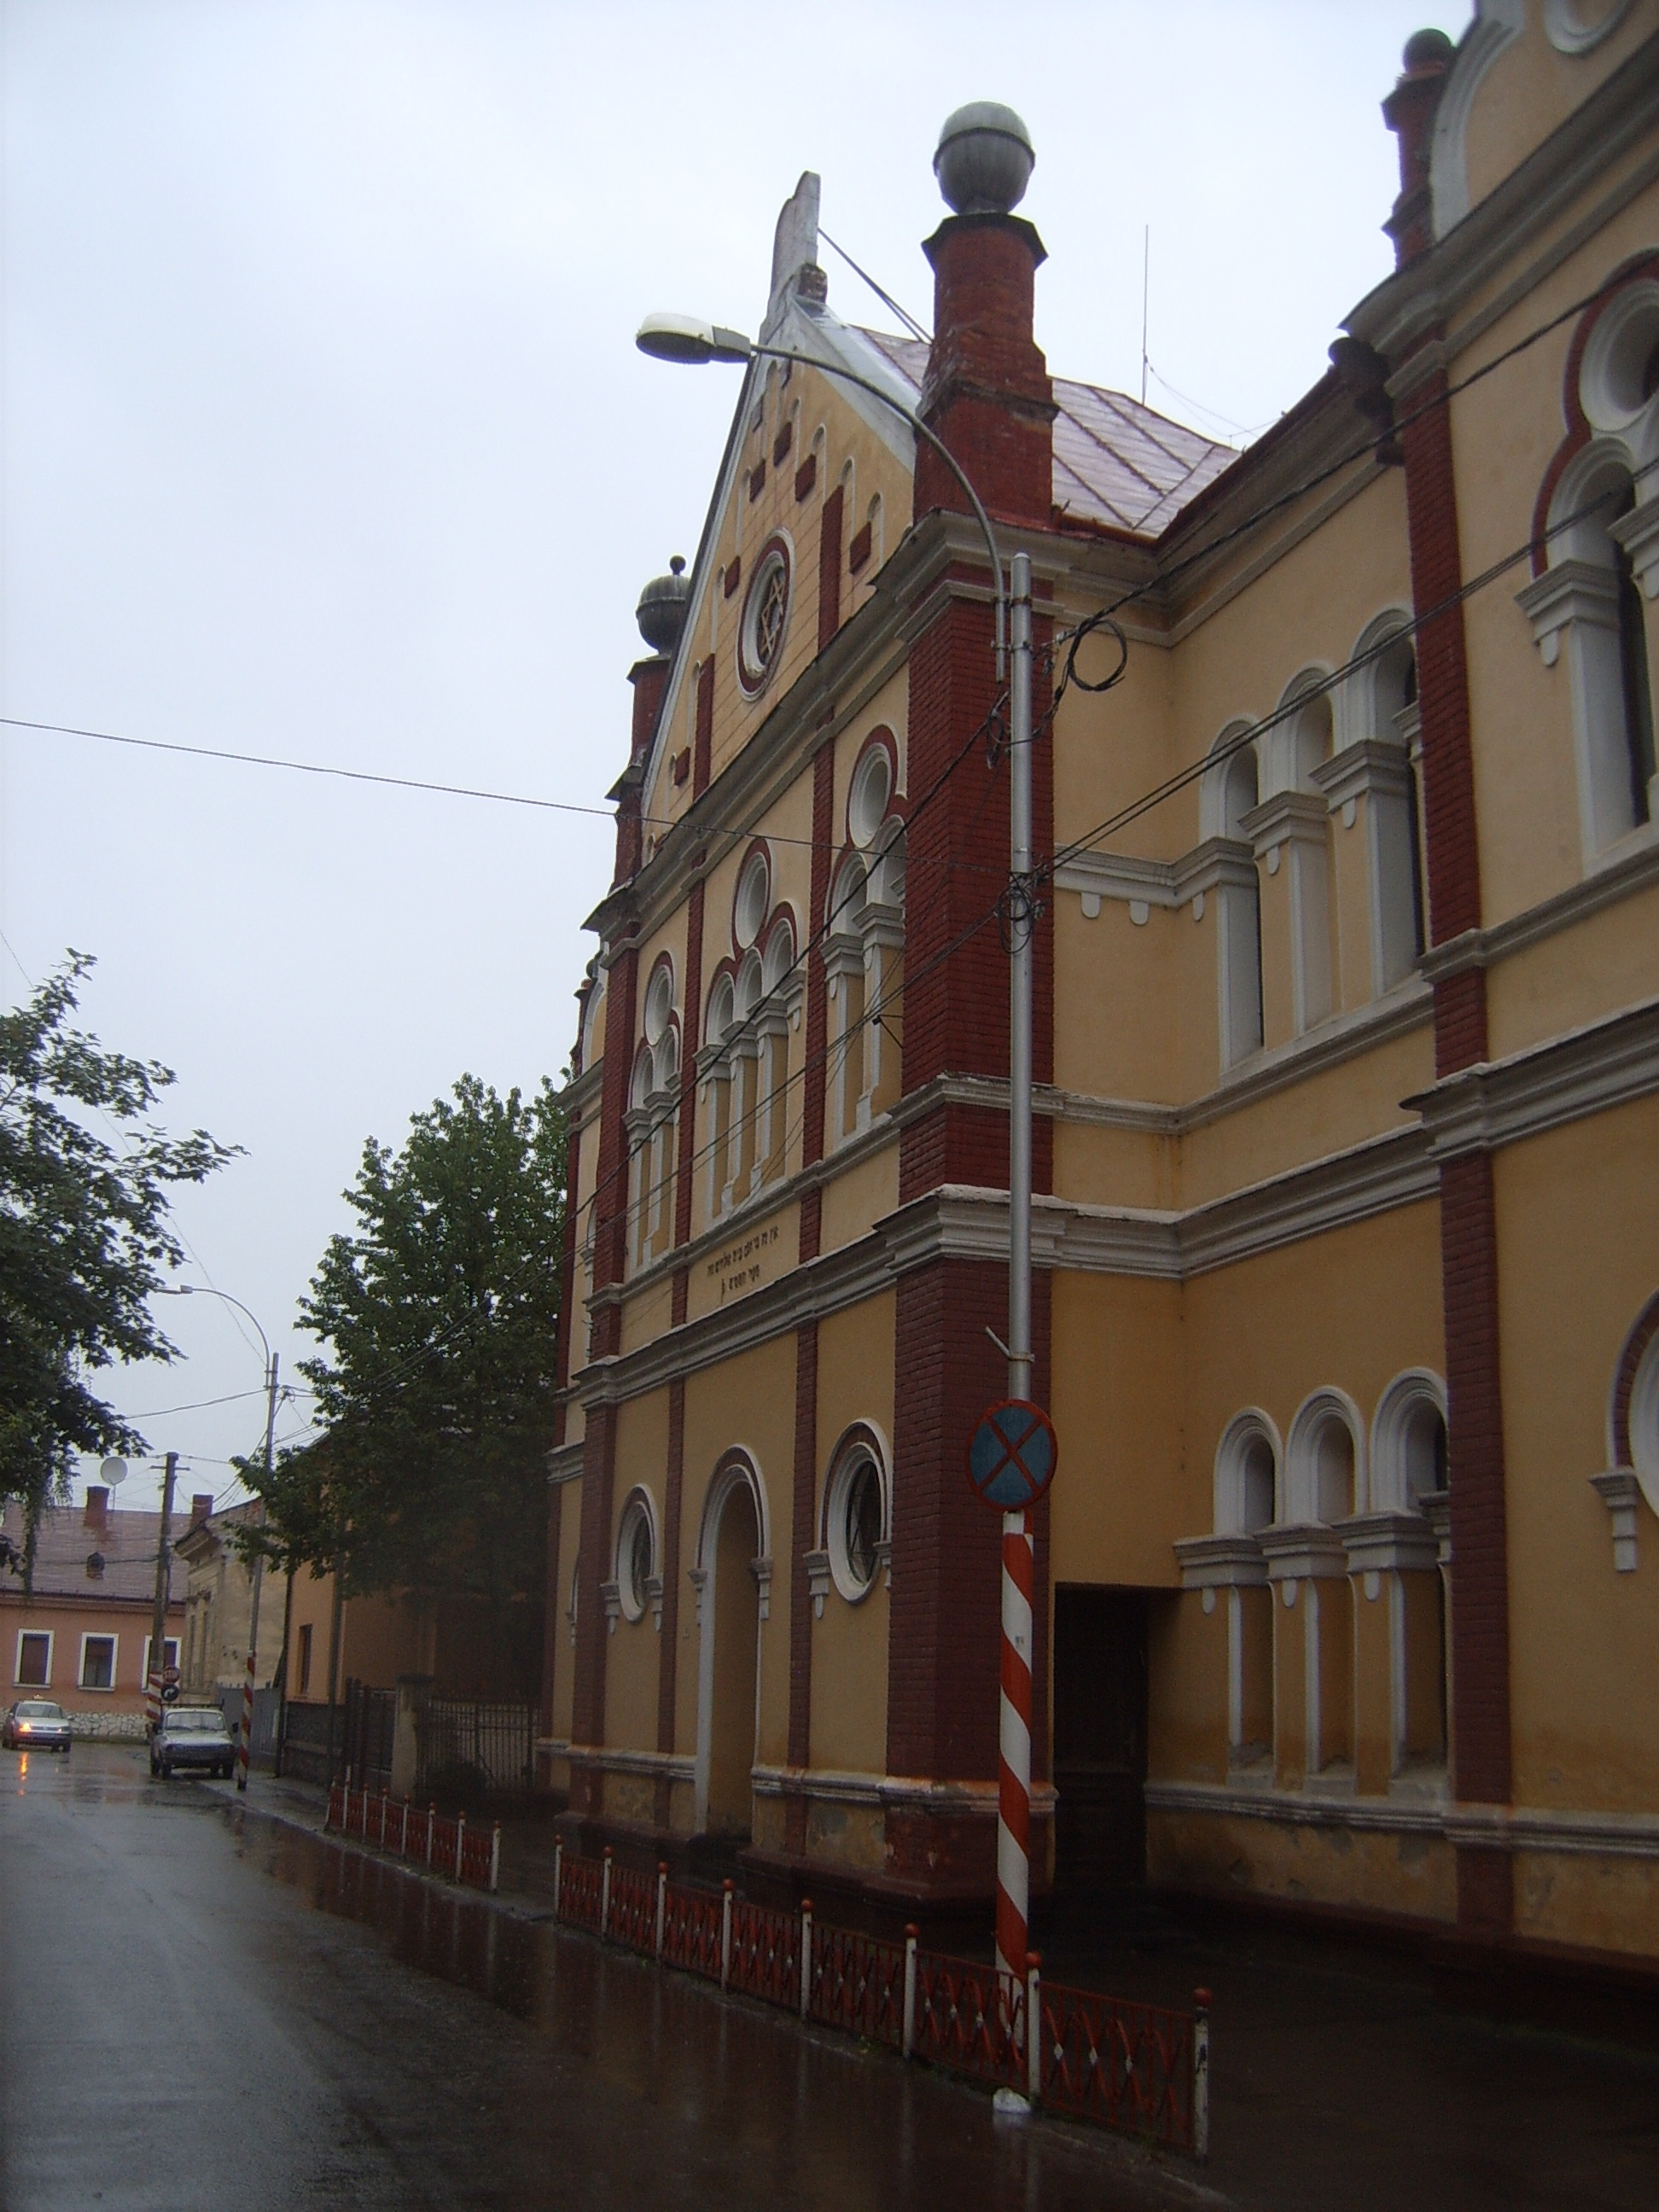 File:Sighet synagogue.JPG - Wikipedia, the free encyclopedia